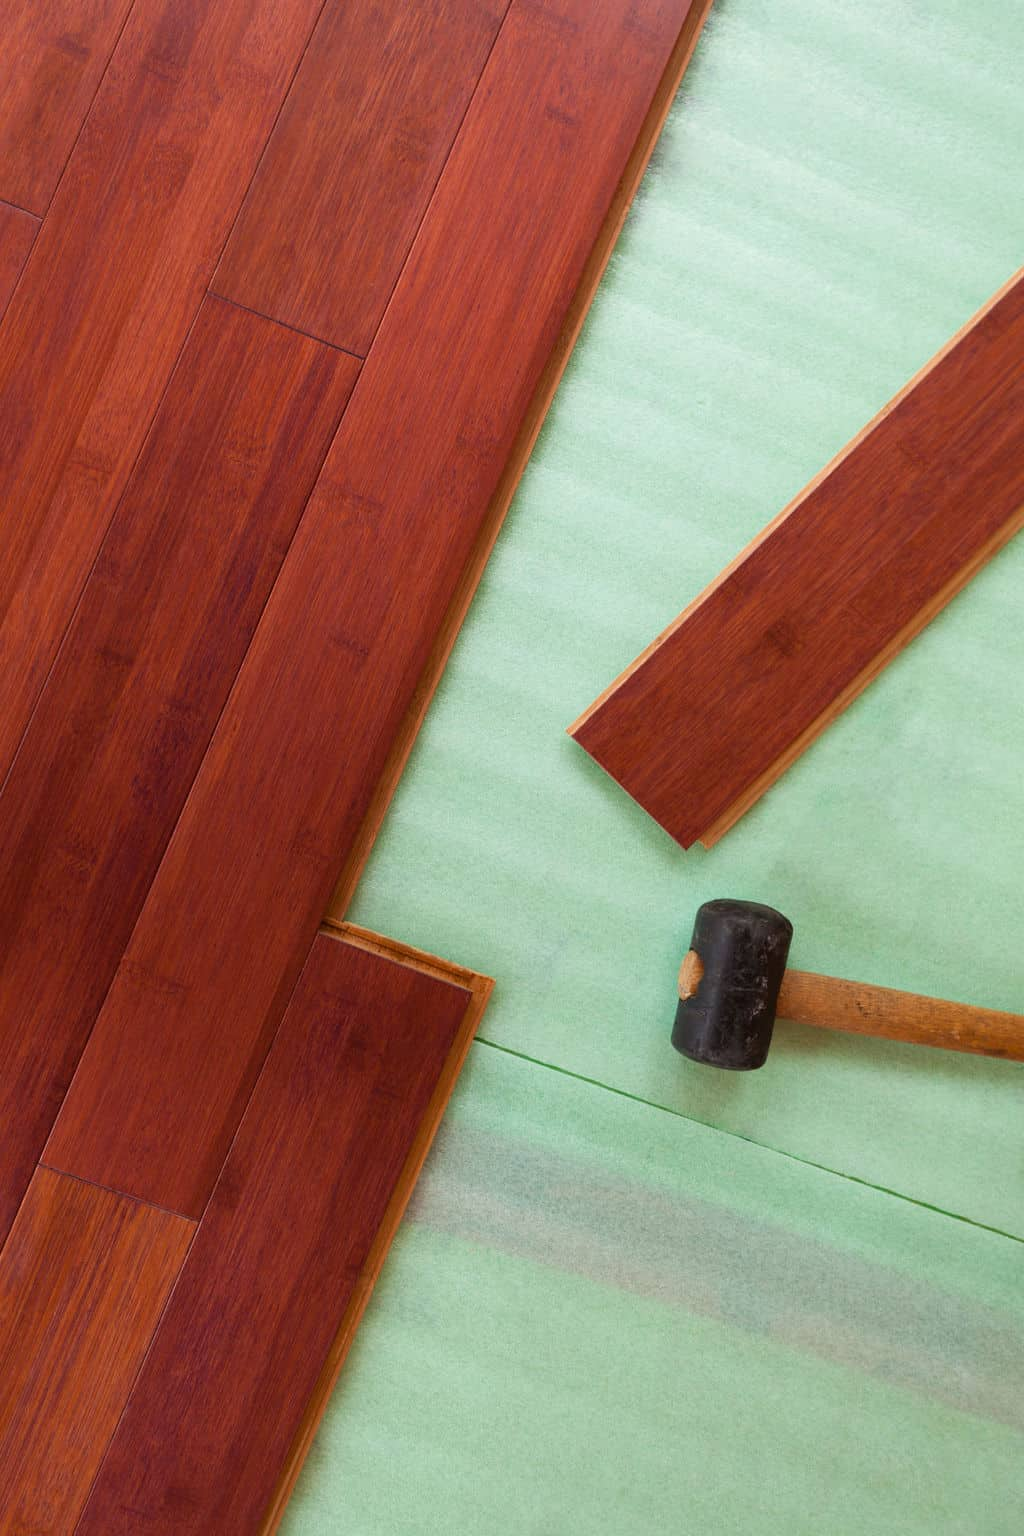 The Newest Thing In Natural Flooring Strand Woven Bamboo Flooring